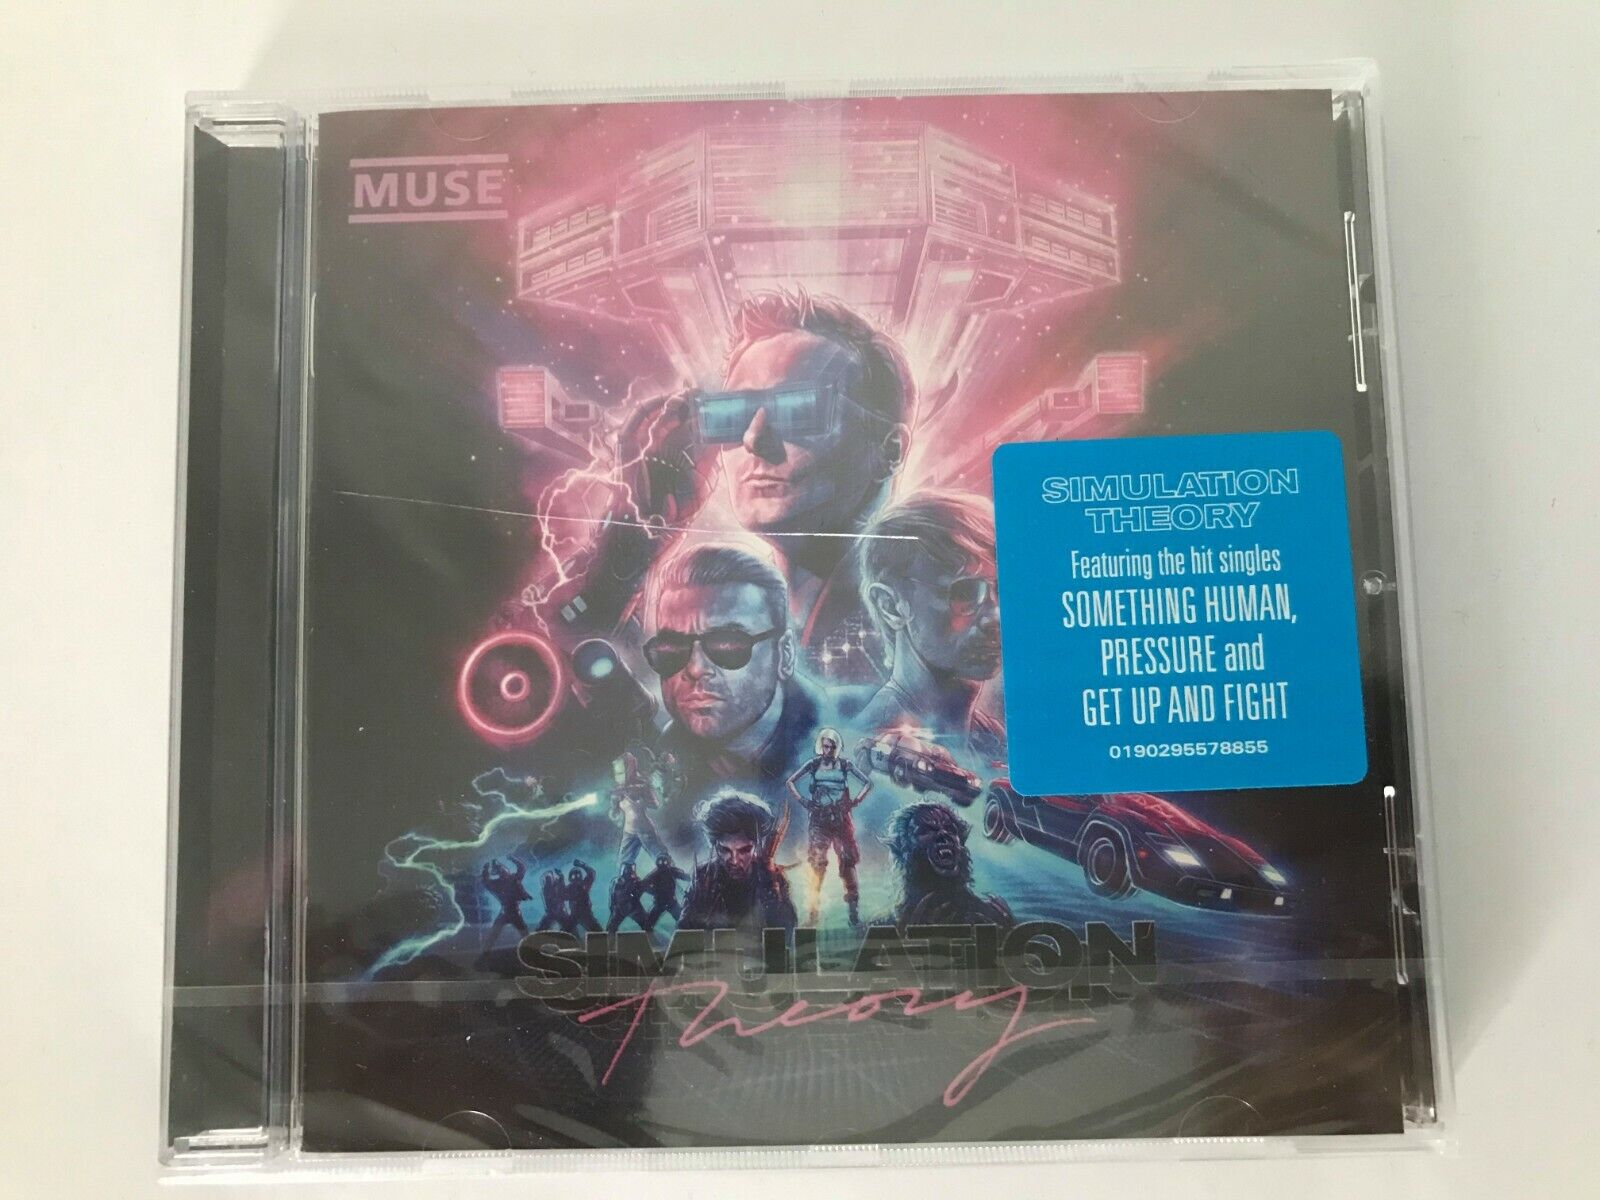 muse - simulation theory (album cd neuf sous blister)